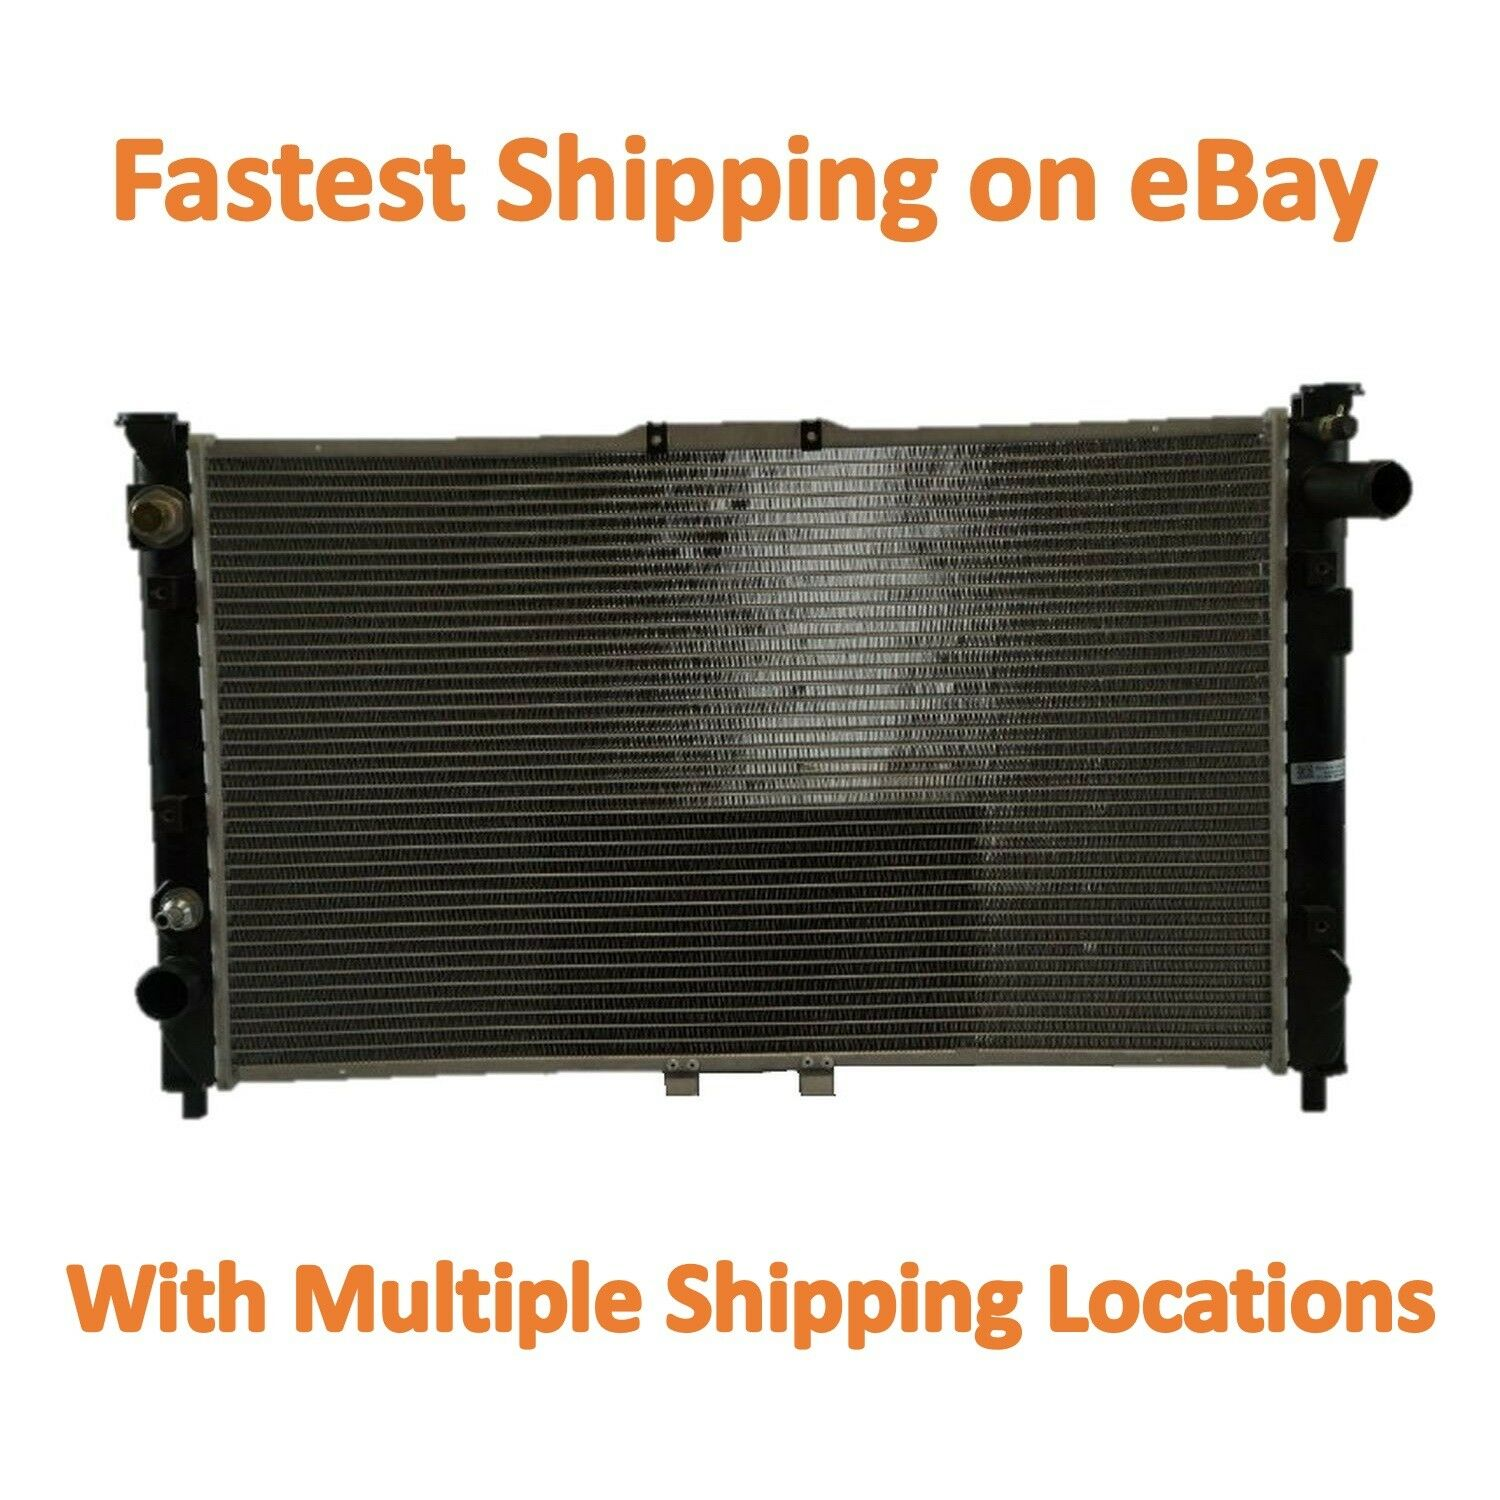 Radiator Replacement For 95-02 Mazda Millenia V6 2.3L 2.5L MA3010107 New 2 Row